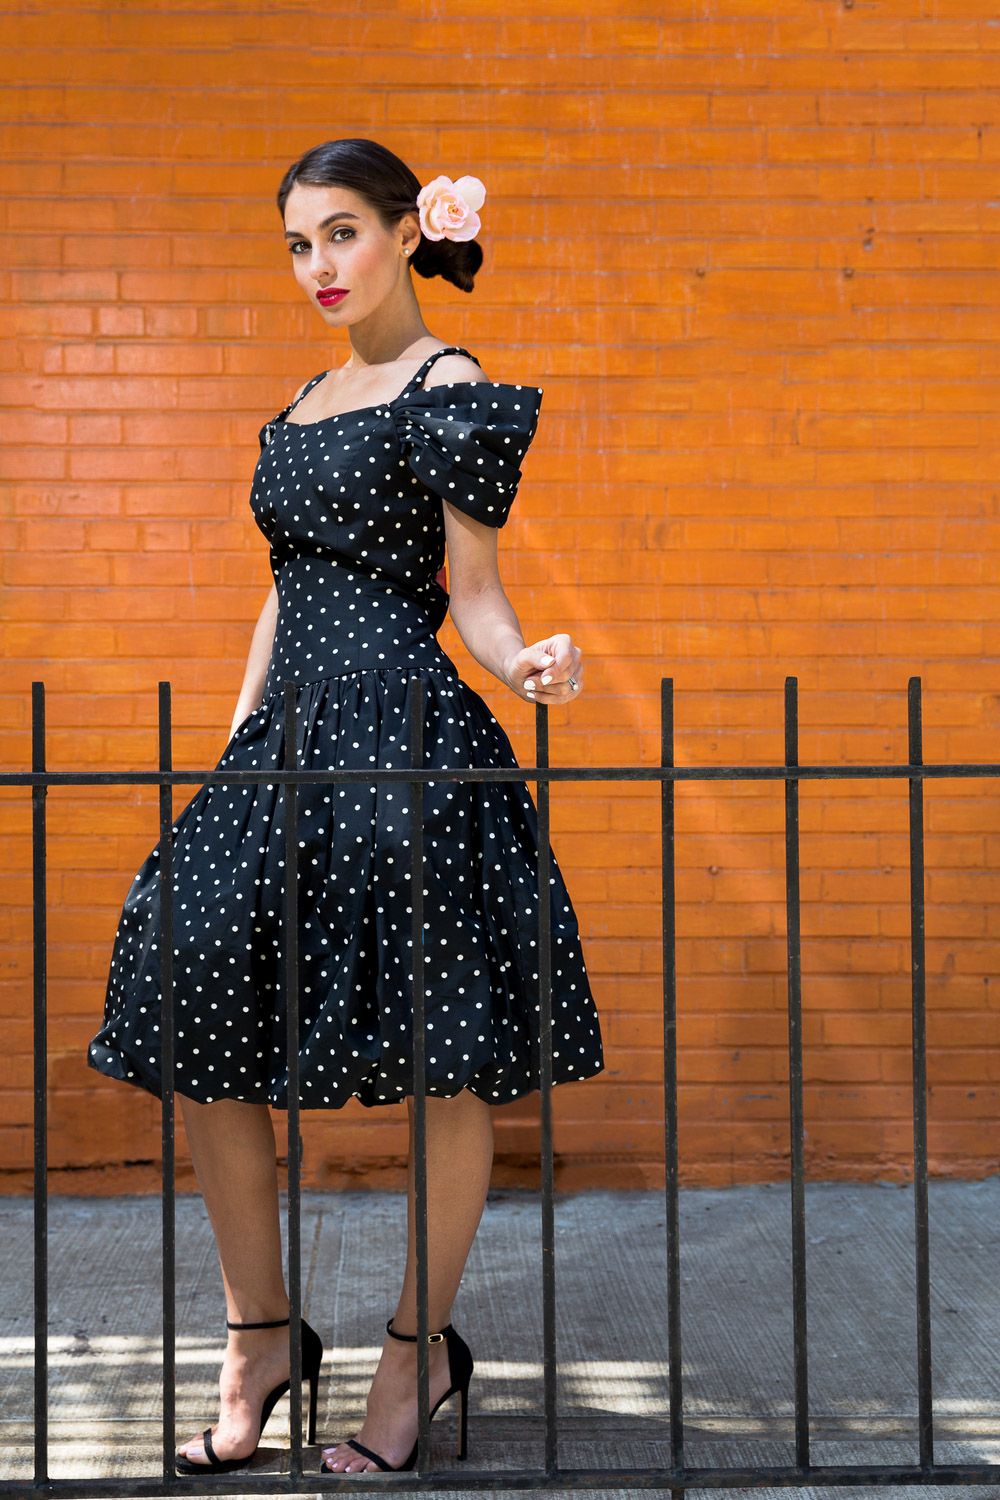 Vintage-Fashion-photography-nyc-east-village-1-8.jpg